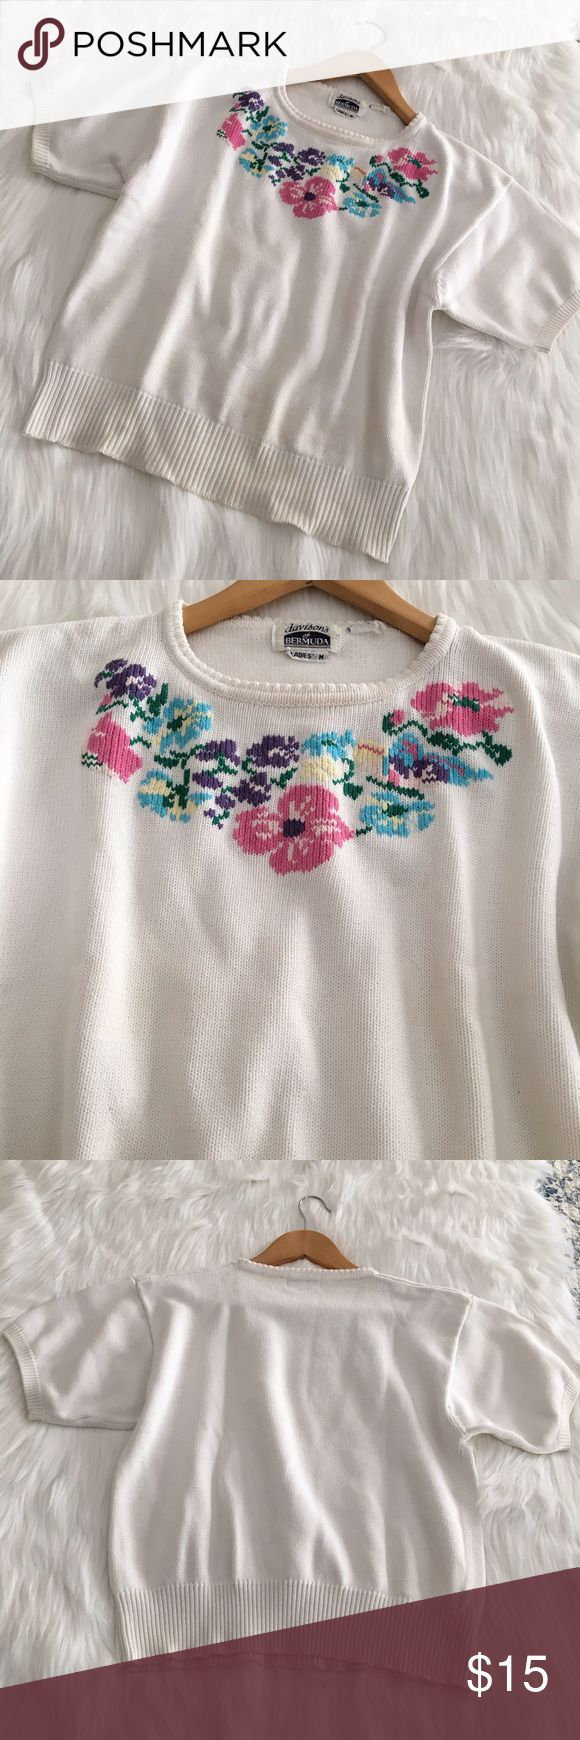 Floral cross stich embroidered sweater top vintage Floral cross stitch/ embroidered floral sweater top  by Davison's of Bermuda (a store located on the island). I always love running into short sleeve sweaters, my fave! Perfect for those cool summer nights. Has some yellowing to the fabric and some tiny spots (see third pic). #embroidered #sweater #top #crossstitch #grandma #aesthetic Davison's of Bermuda  Sweaters Crew & Scoop Necks